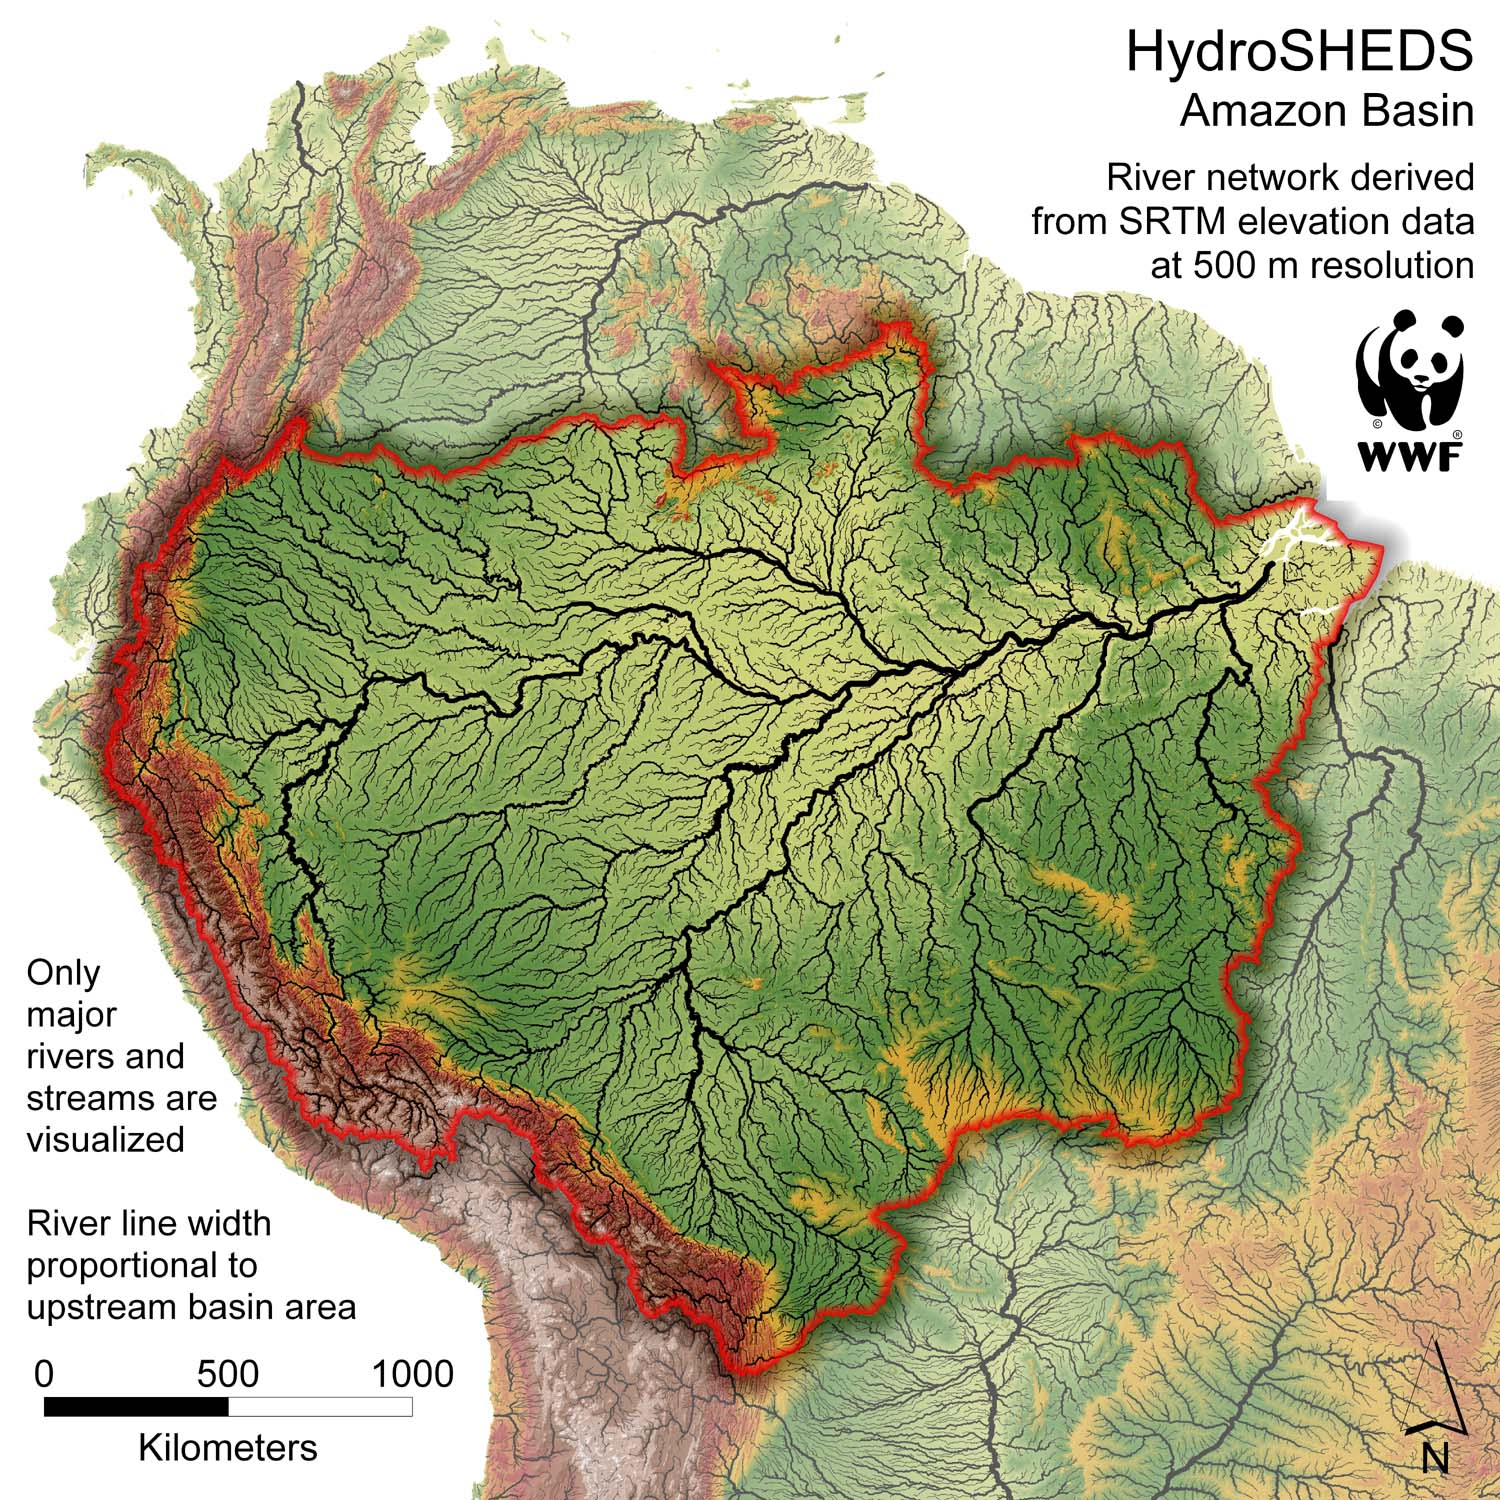 Amazon basin hydrosheds map see map details from panda org